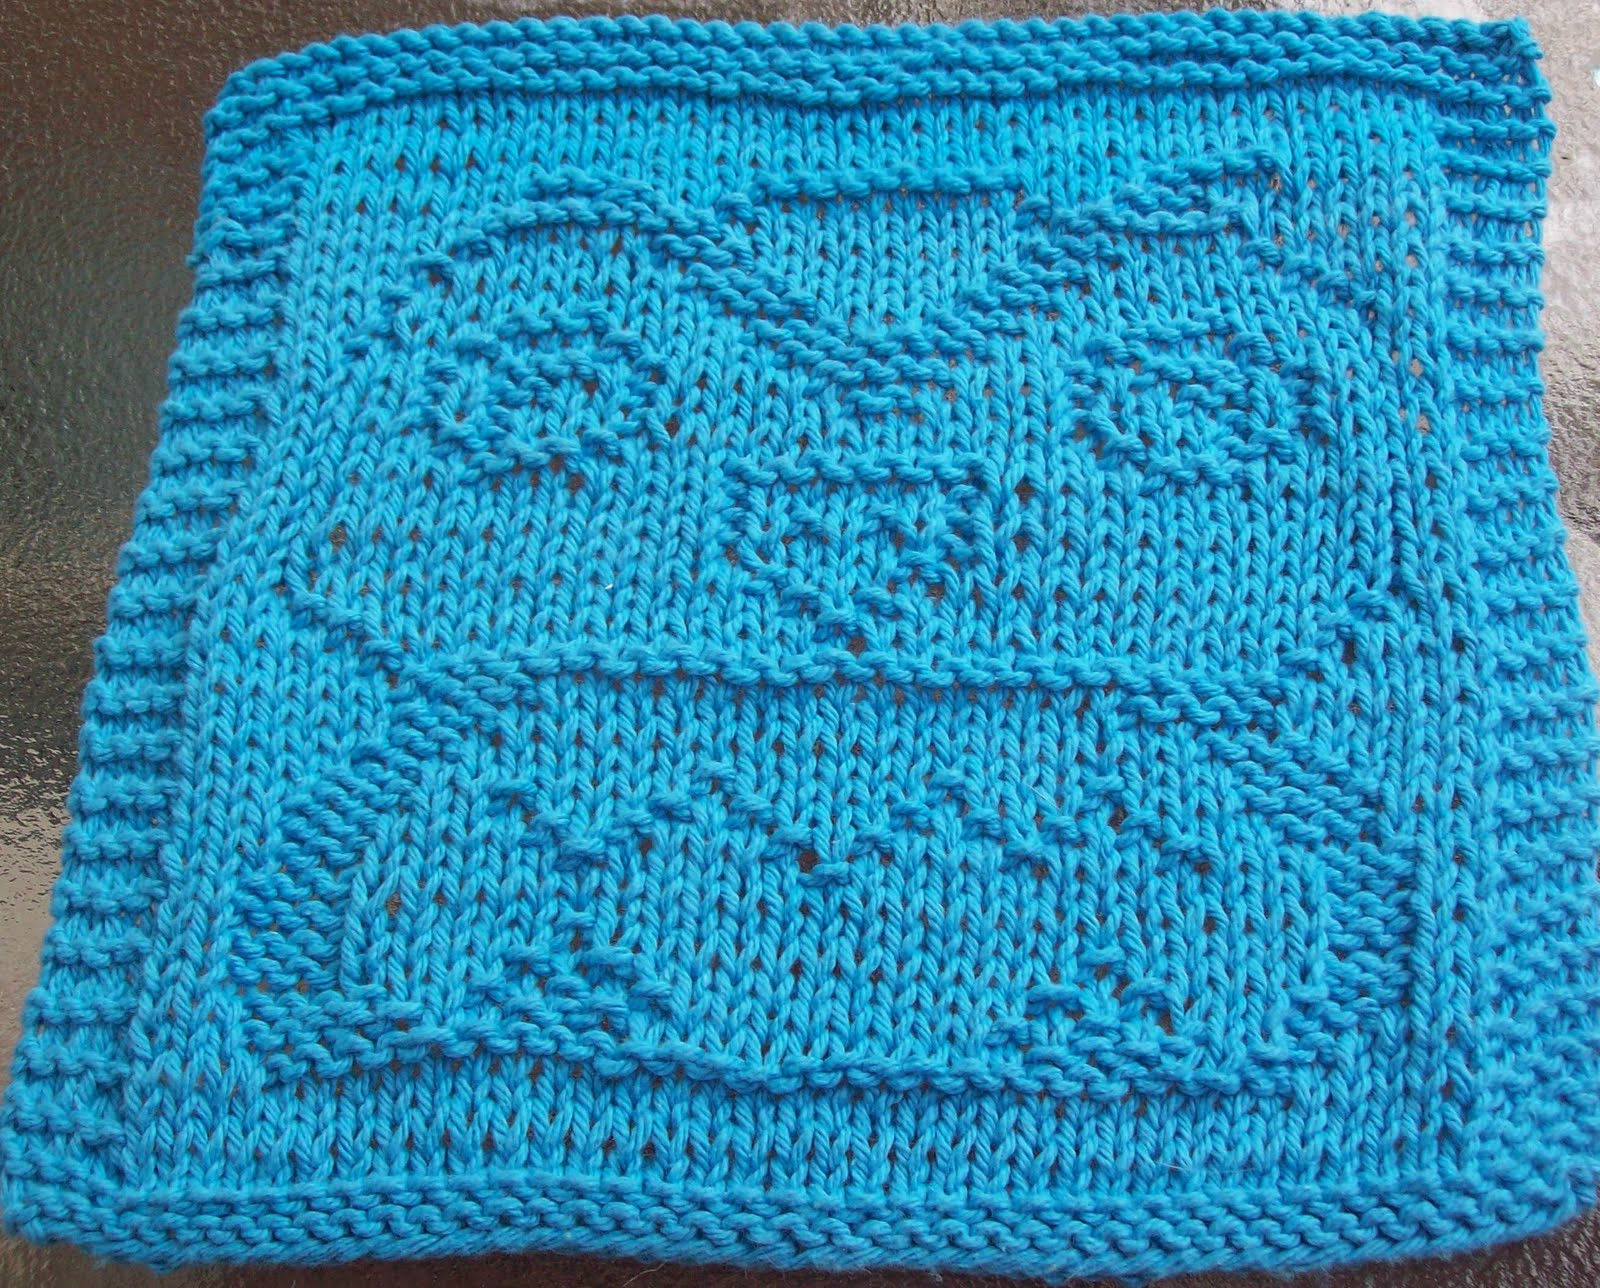 Knitted Dishcloth Patterns Fresh Knit Patterns for Dishcloths Of Brilliant 47 Pics Knitted Dishcloth Patterns